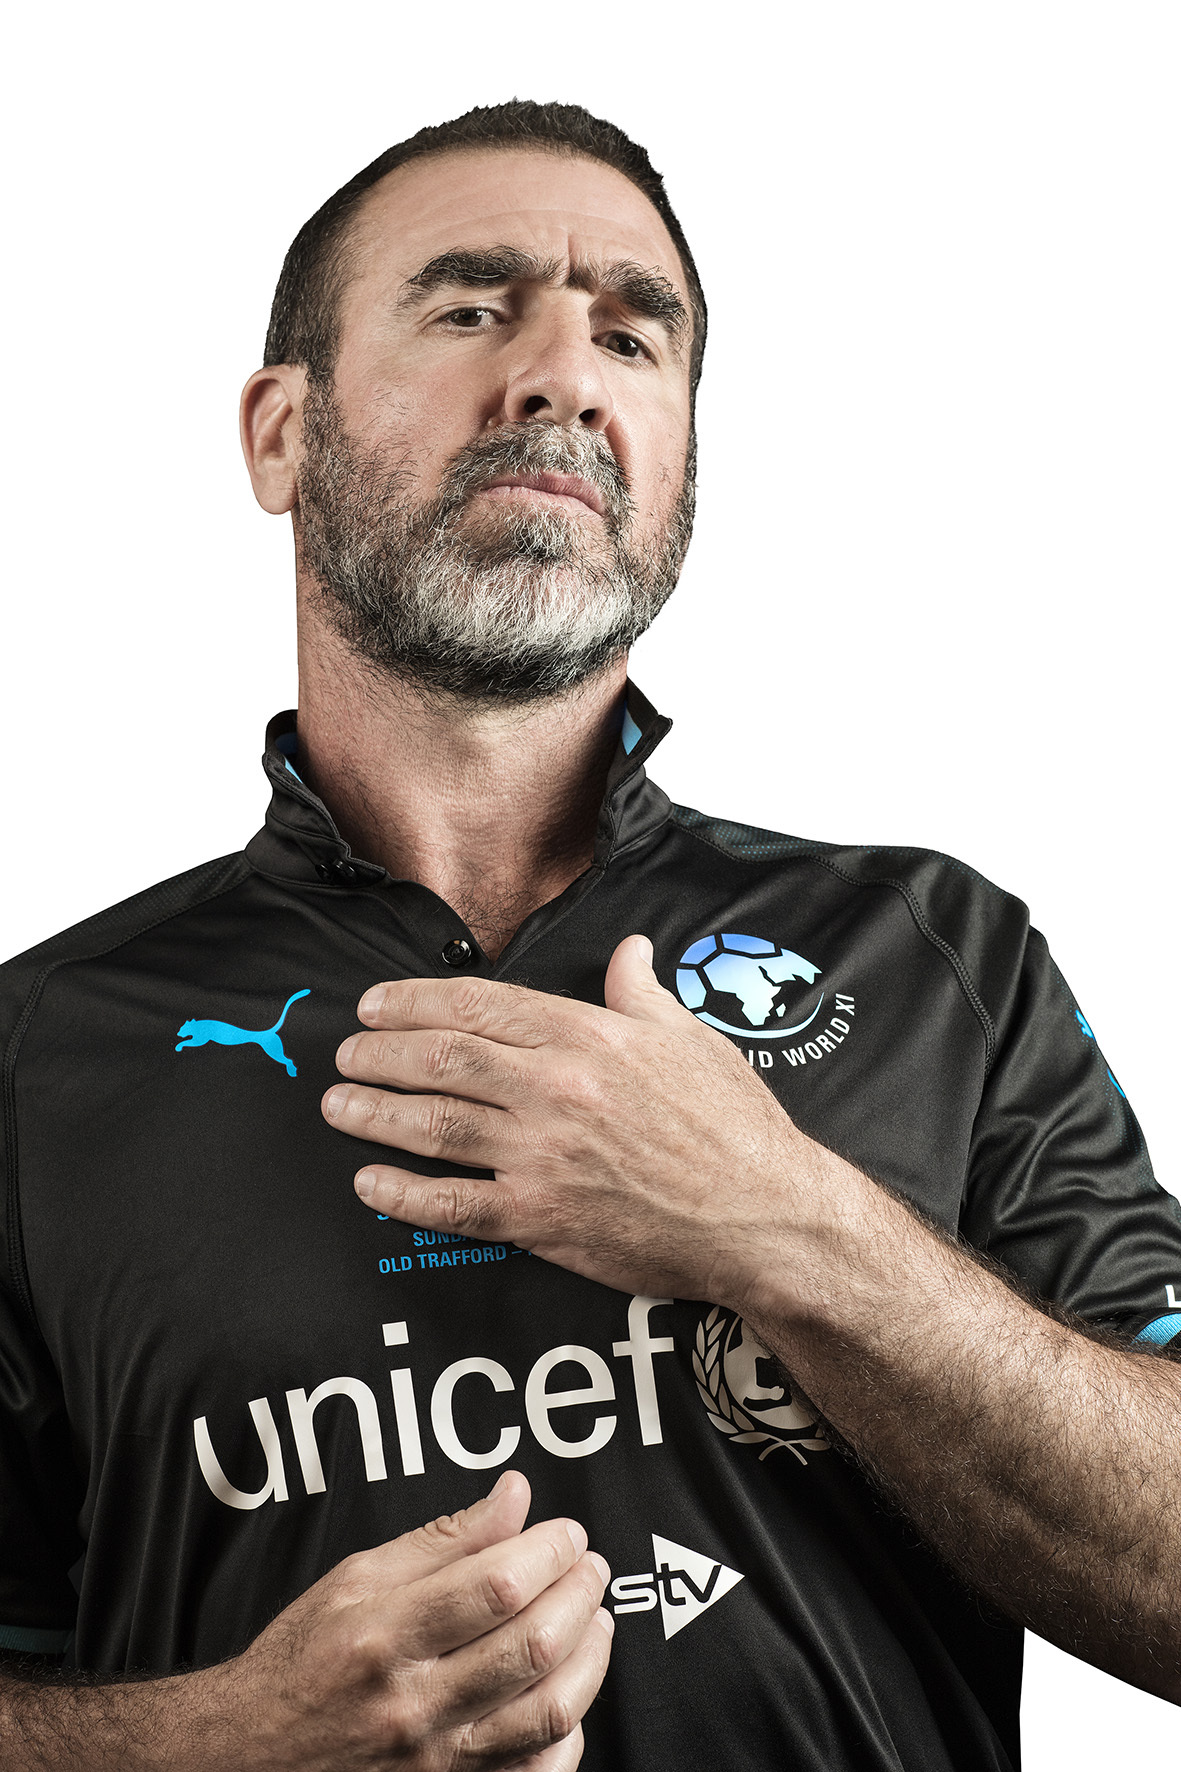 Manchester United legend Eric Cantona will make a stunning Old Trafford return on Sunday 10th June to take part in Soccer Aid for Unicef.